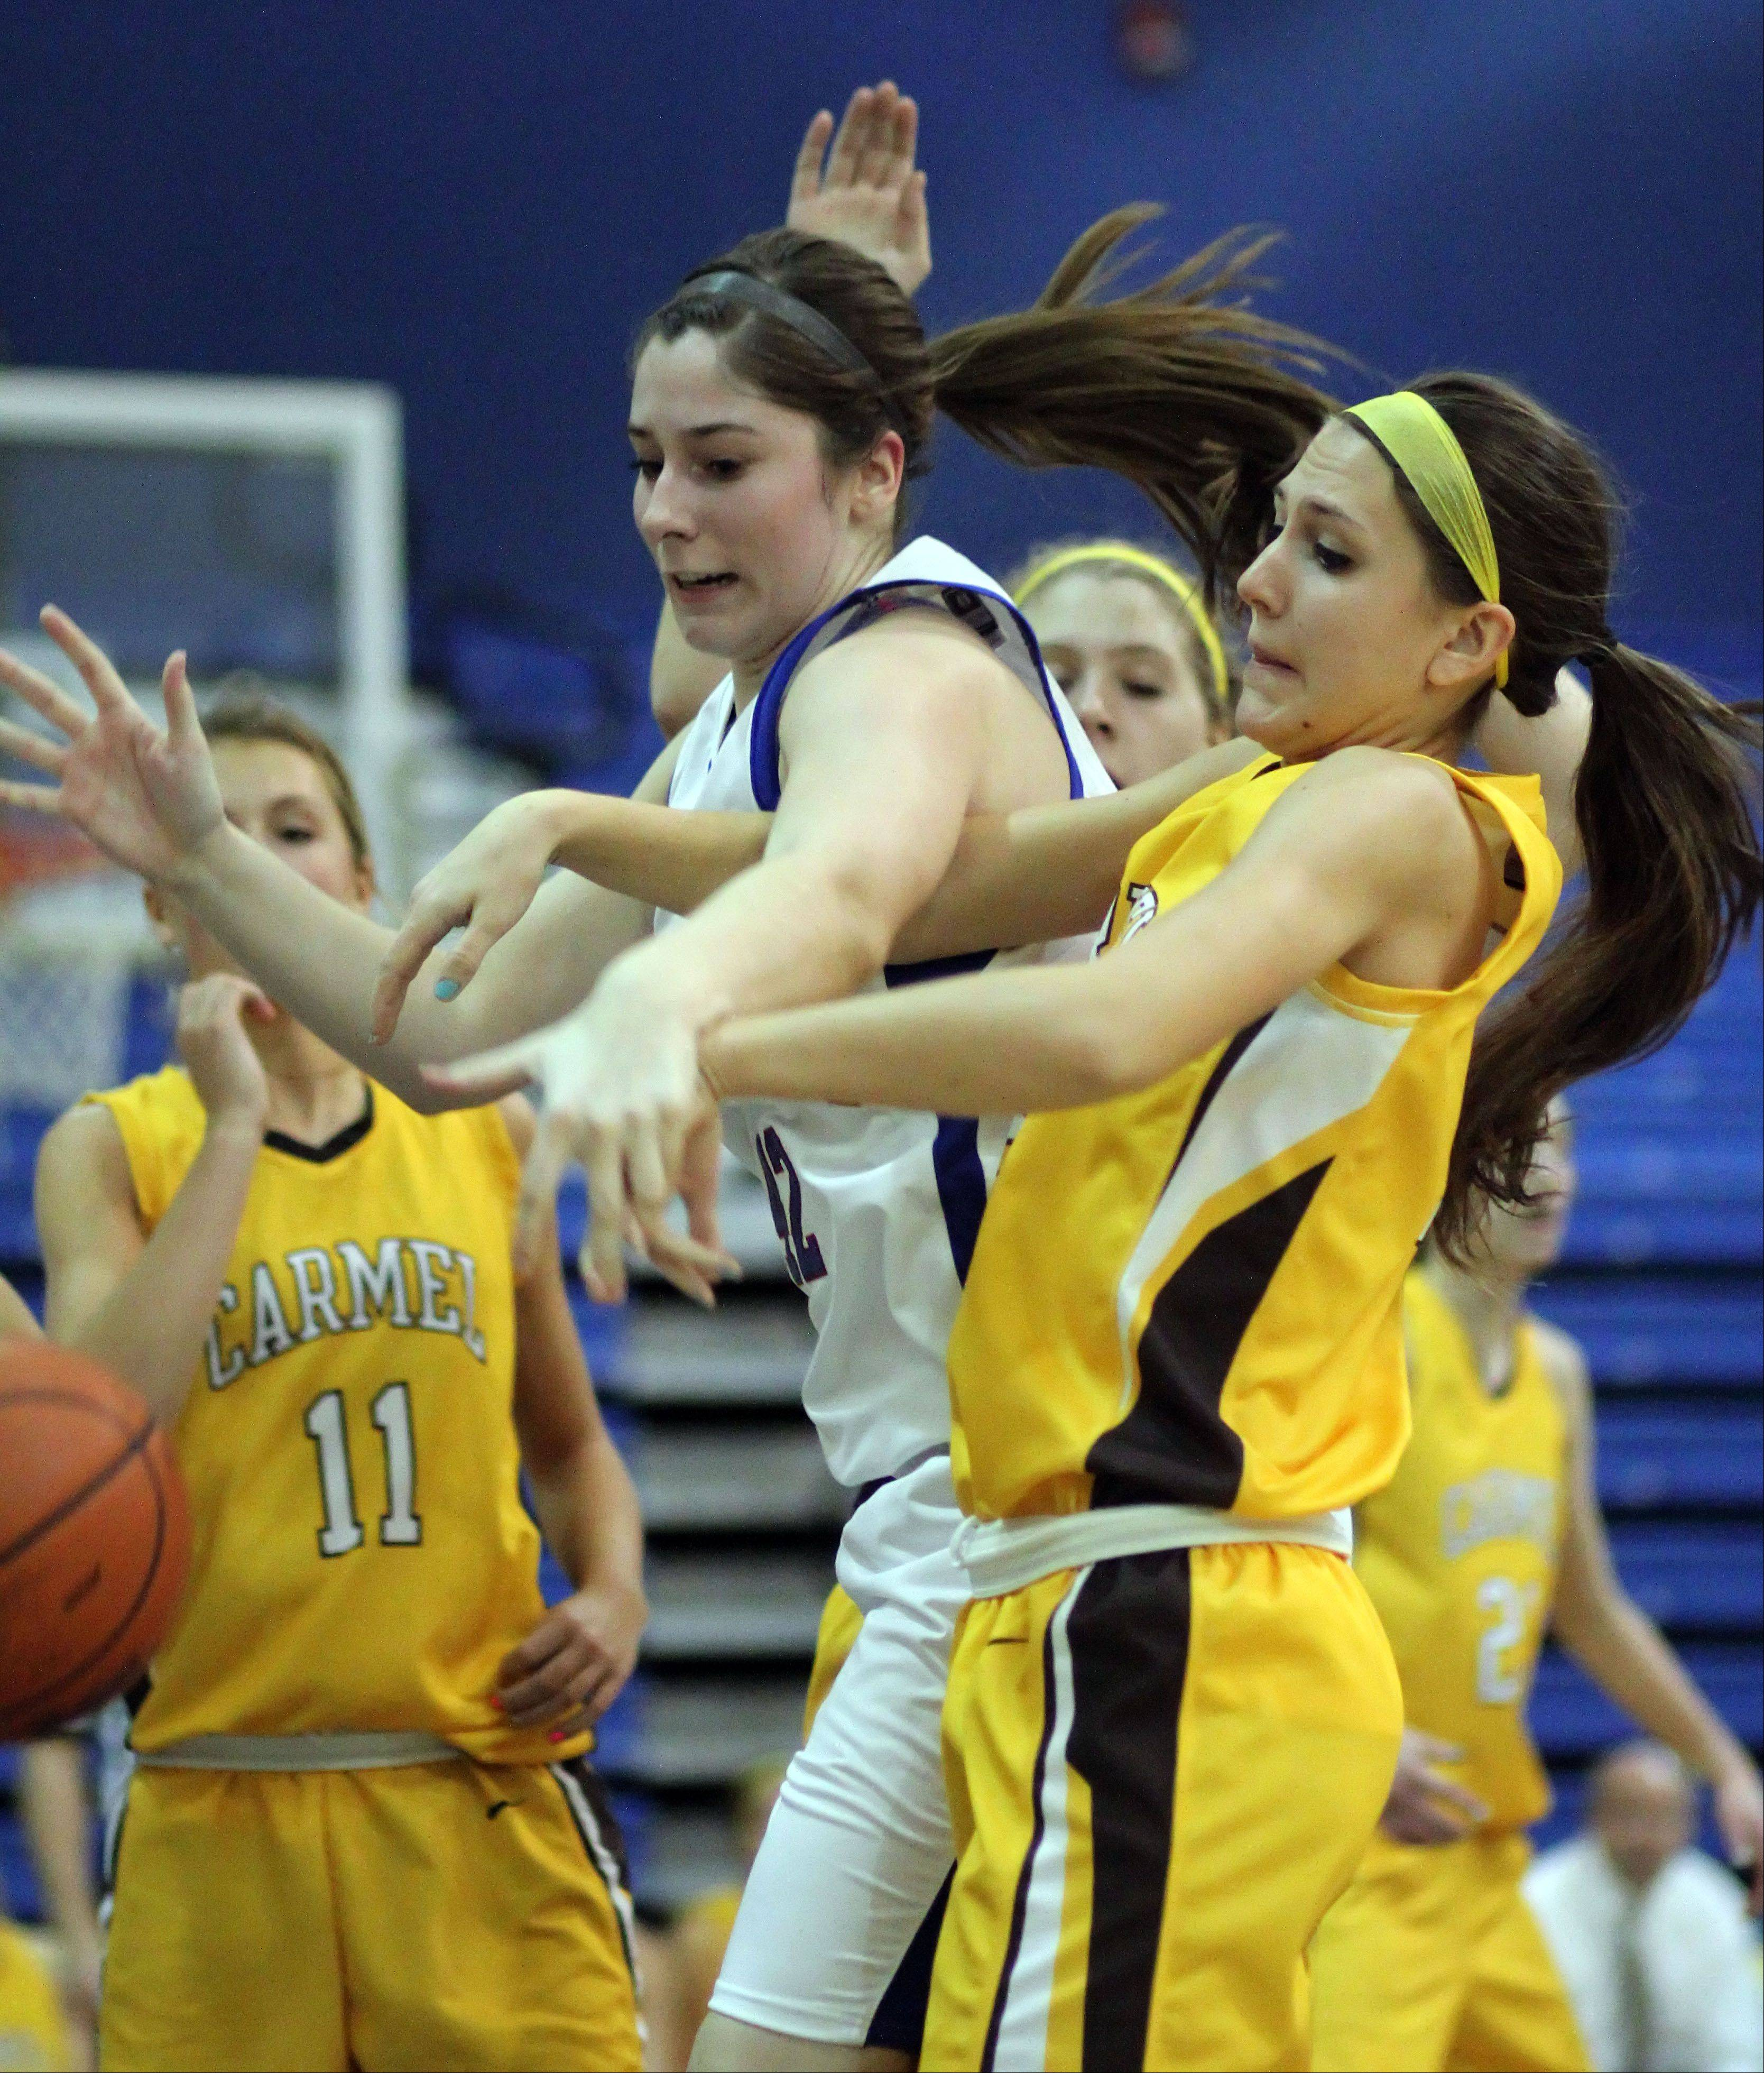 Lakes' Therese McMahon, left, and Carmel's Paige Gauthier battle for a rebound on Monday night at Lakes.